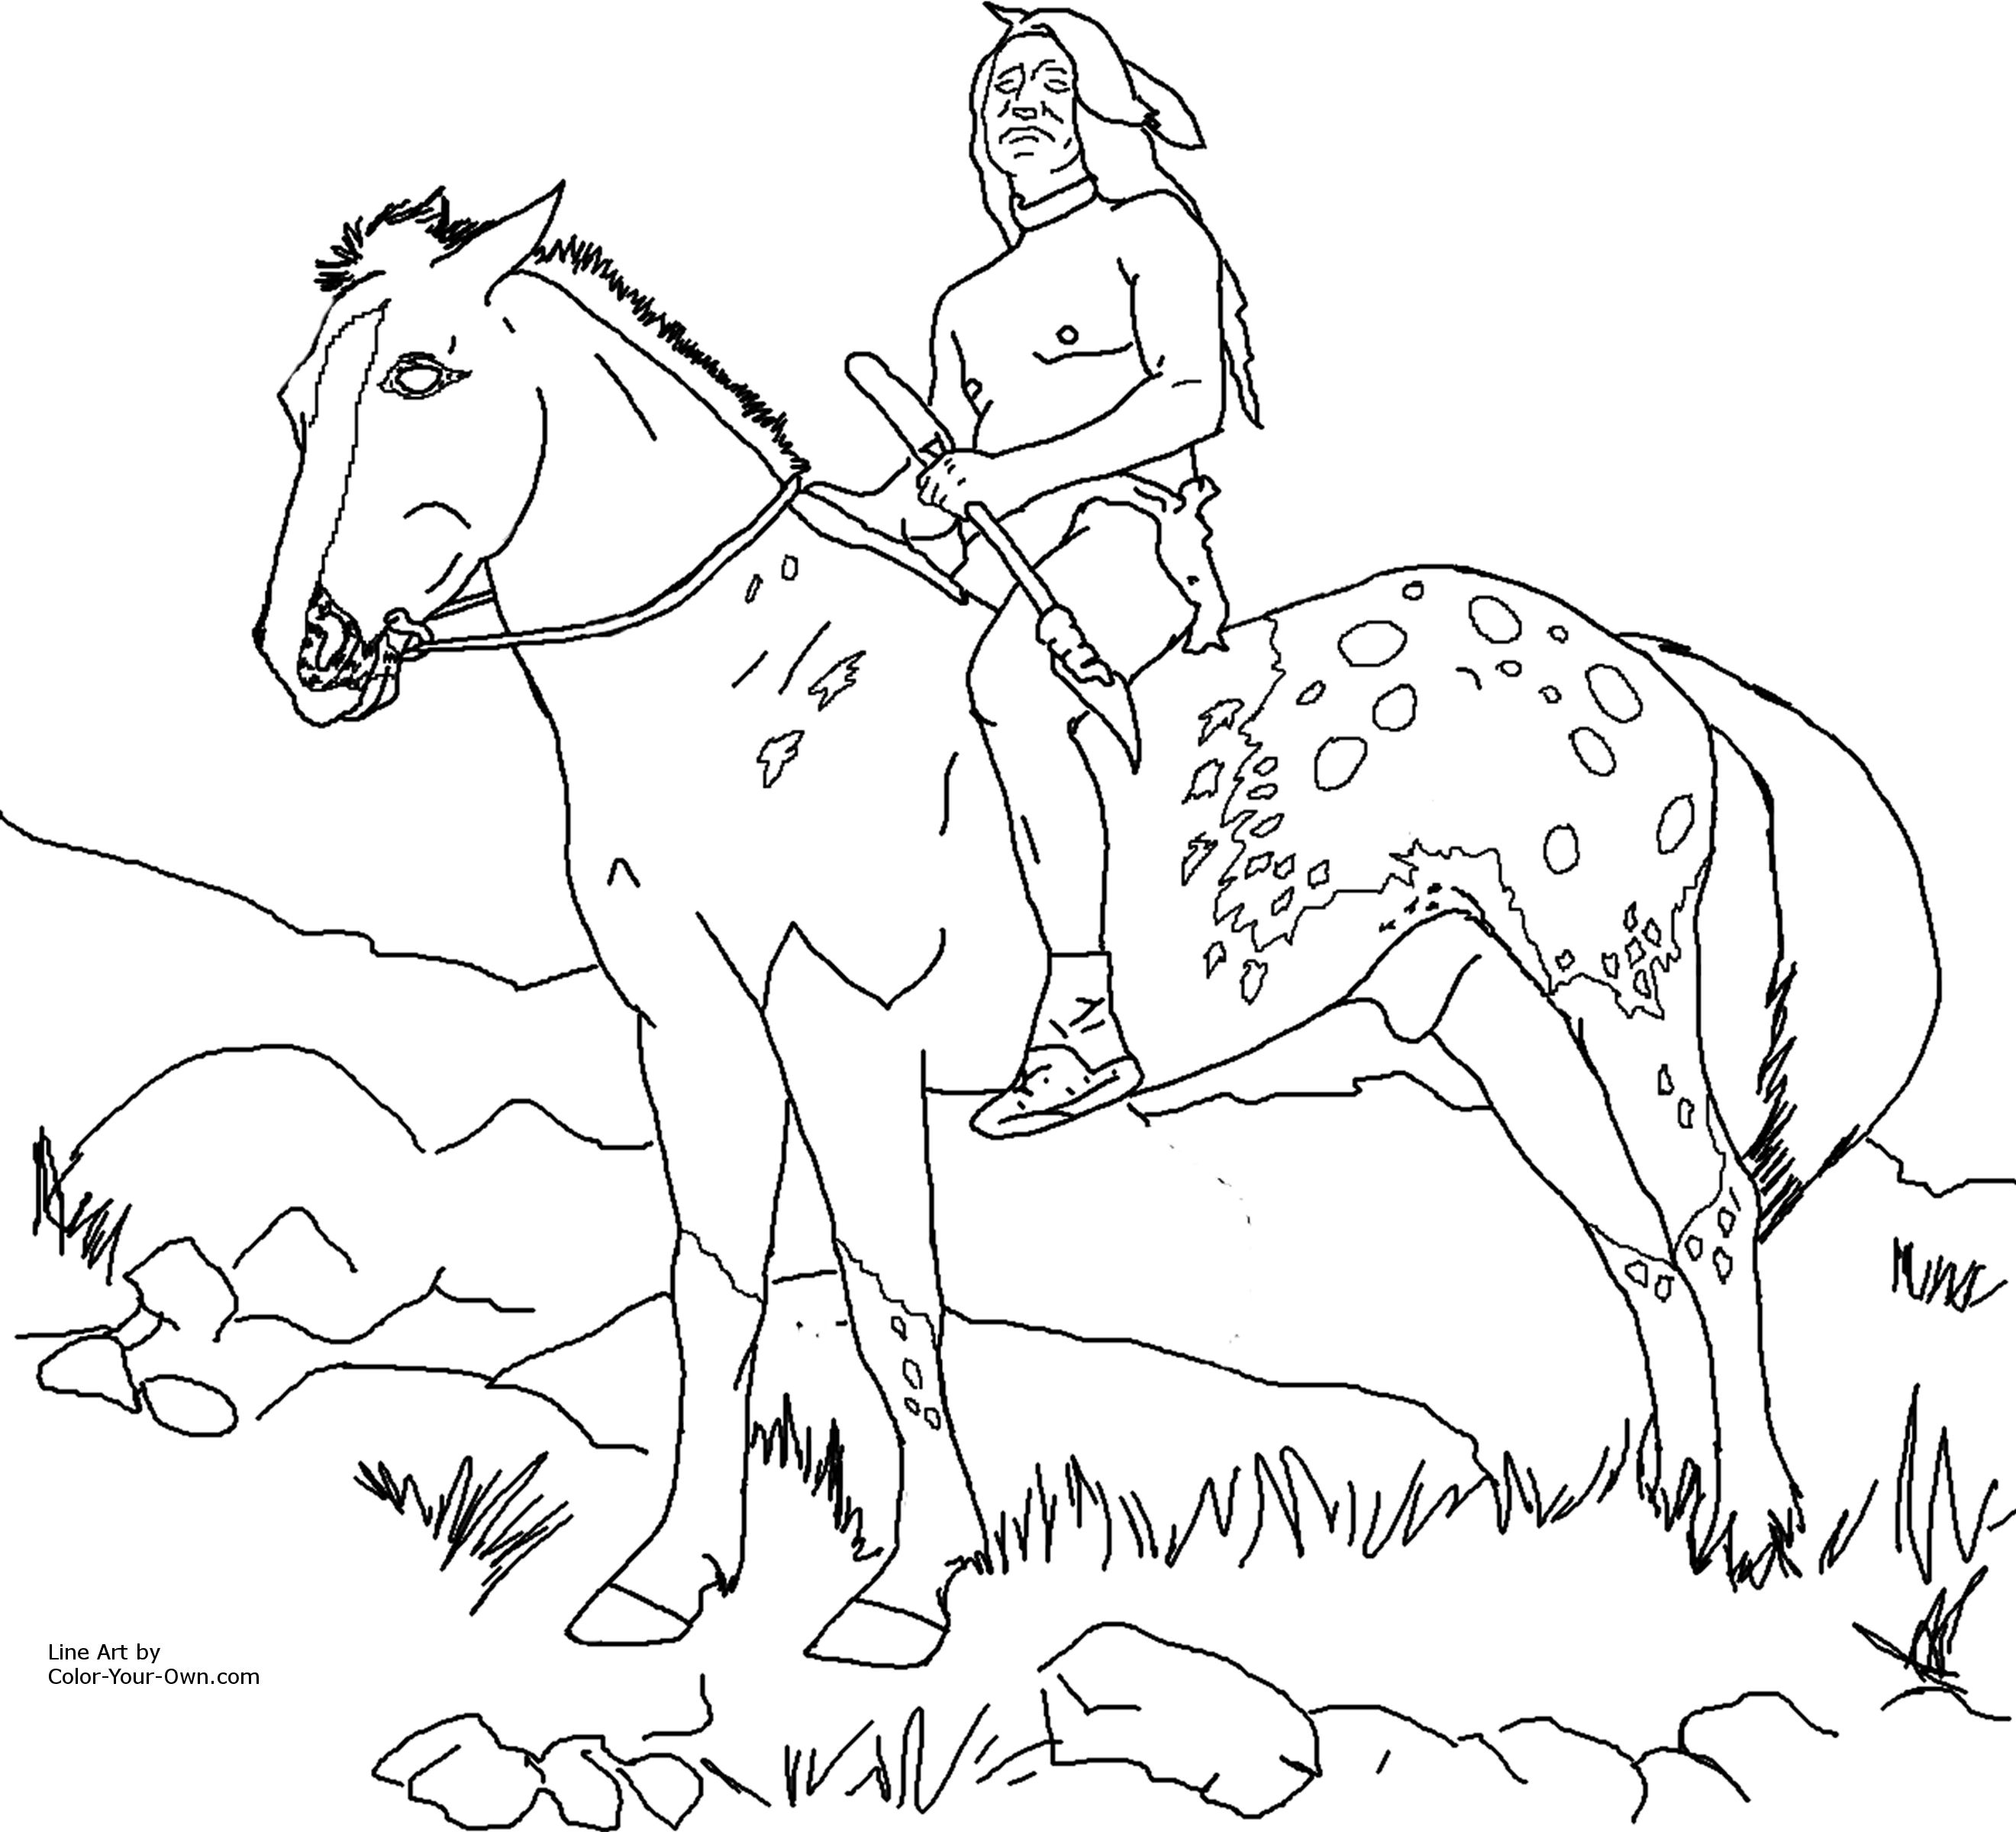 Native American Coloring Pages Print http://color-your-own.com/horse_nez_perce_appaloosa.html